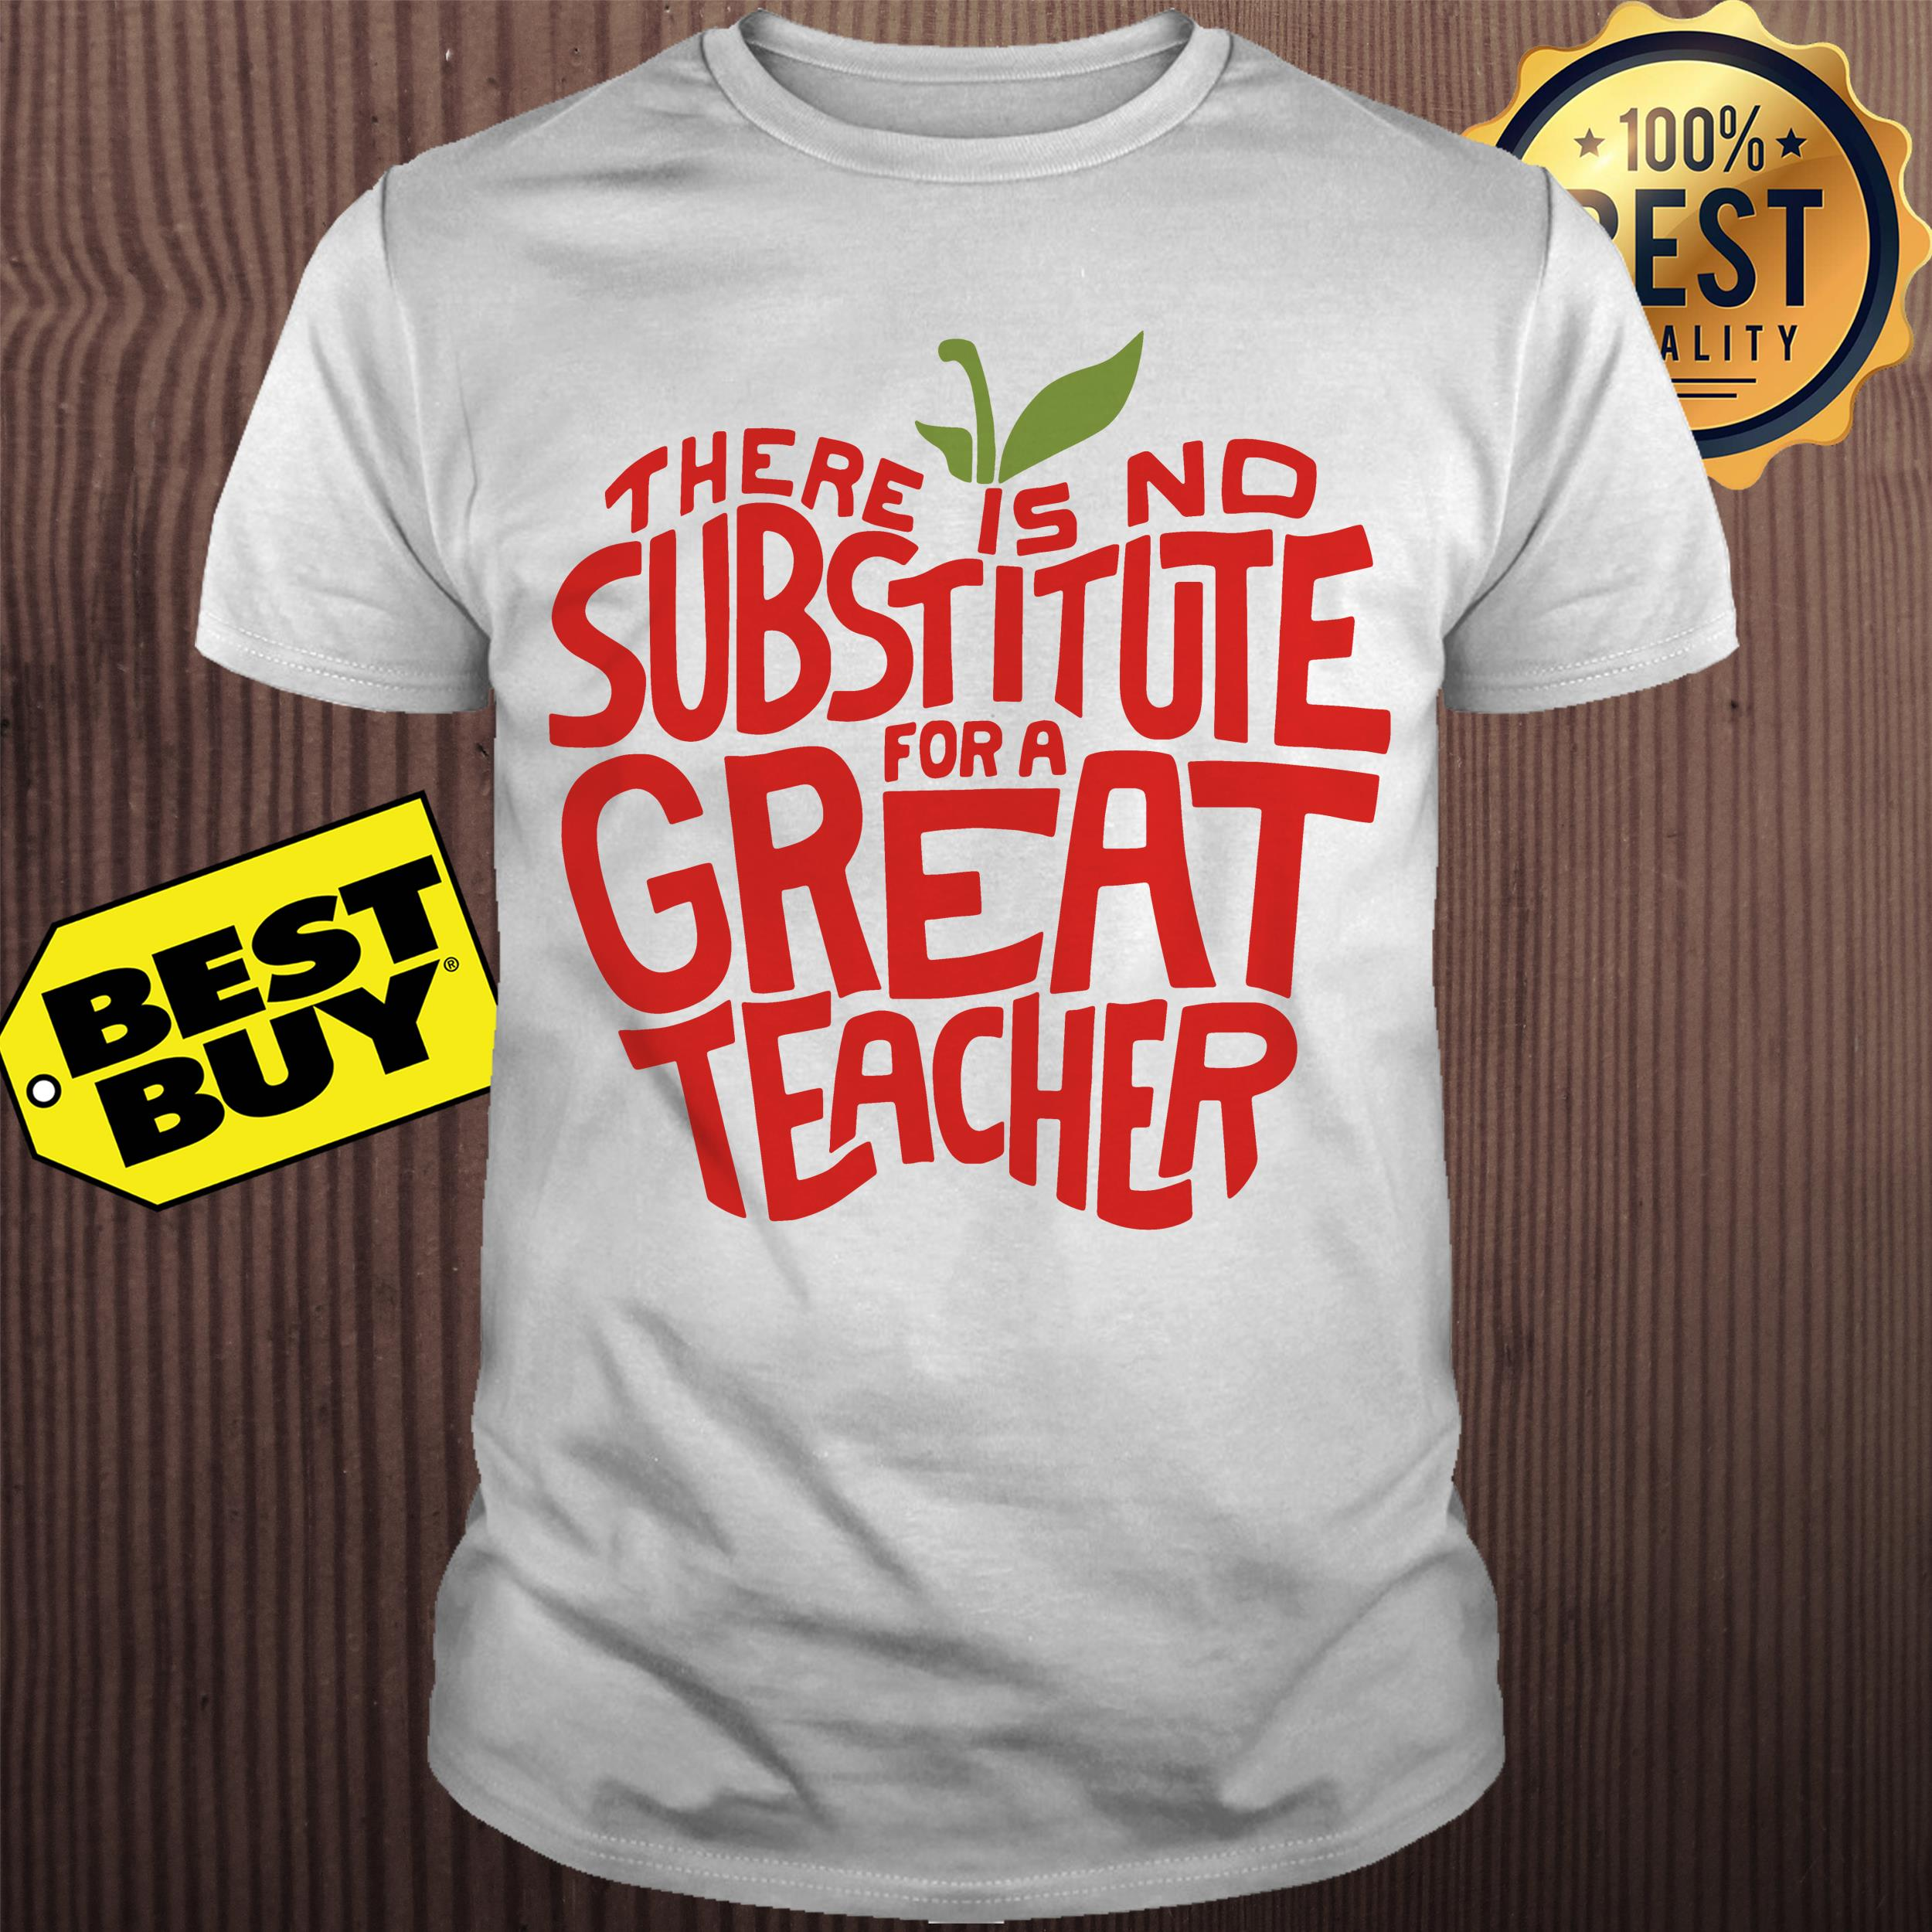 There is no substitute for a great teacher shirt